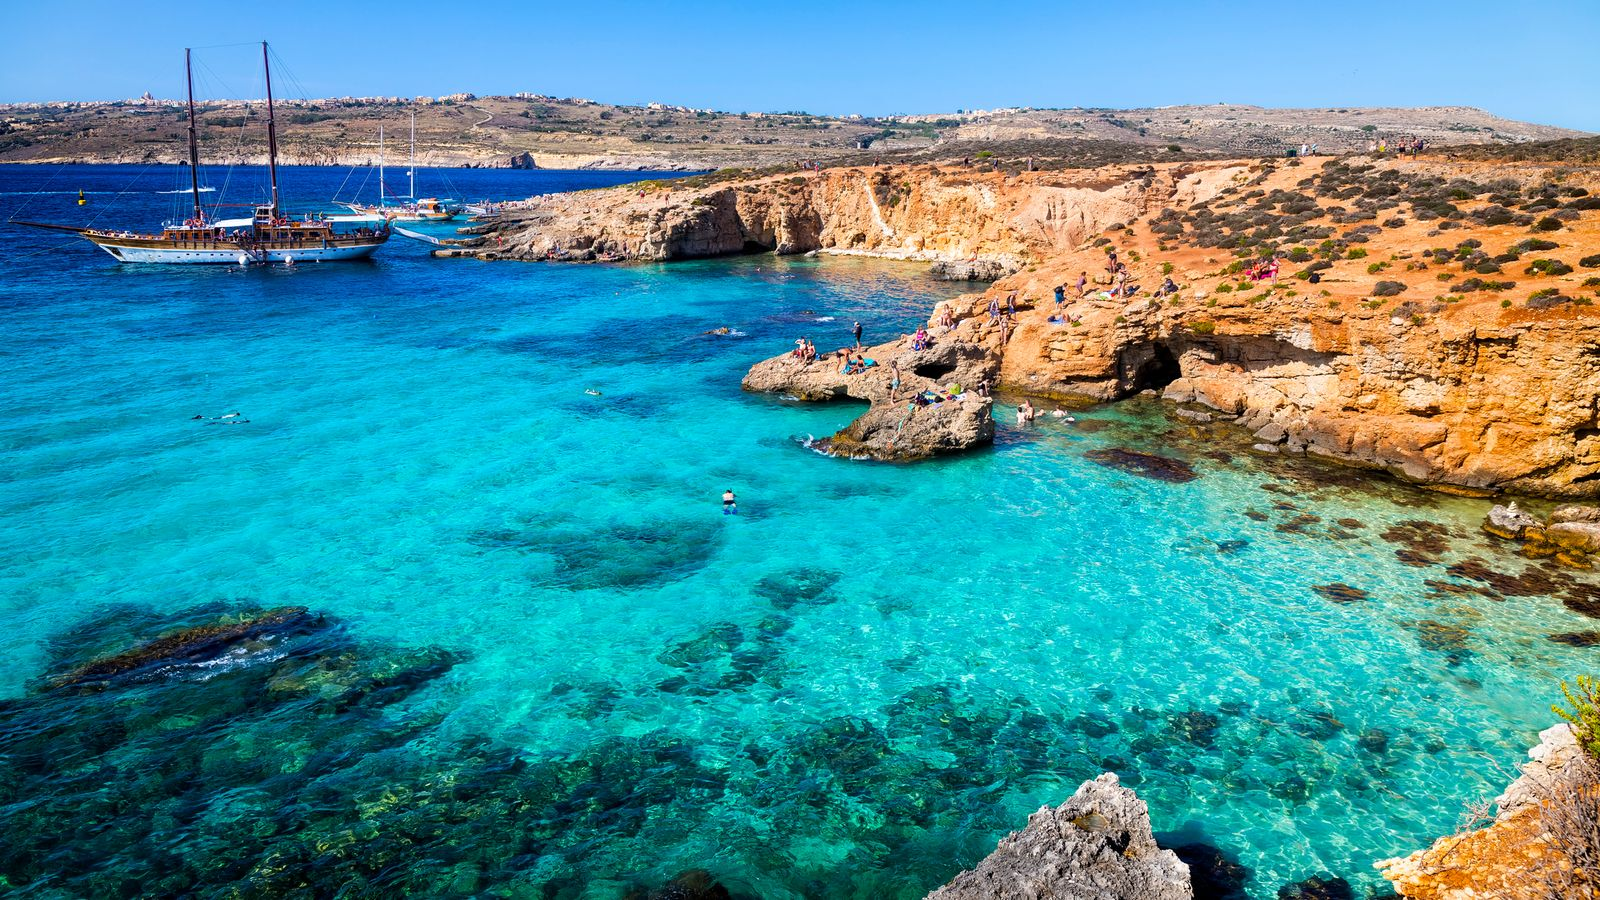 COVID-19: Malta requires proof of vaccination before allowing visitors to enter